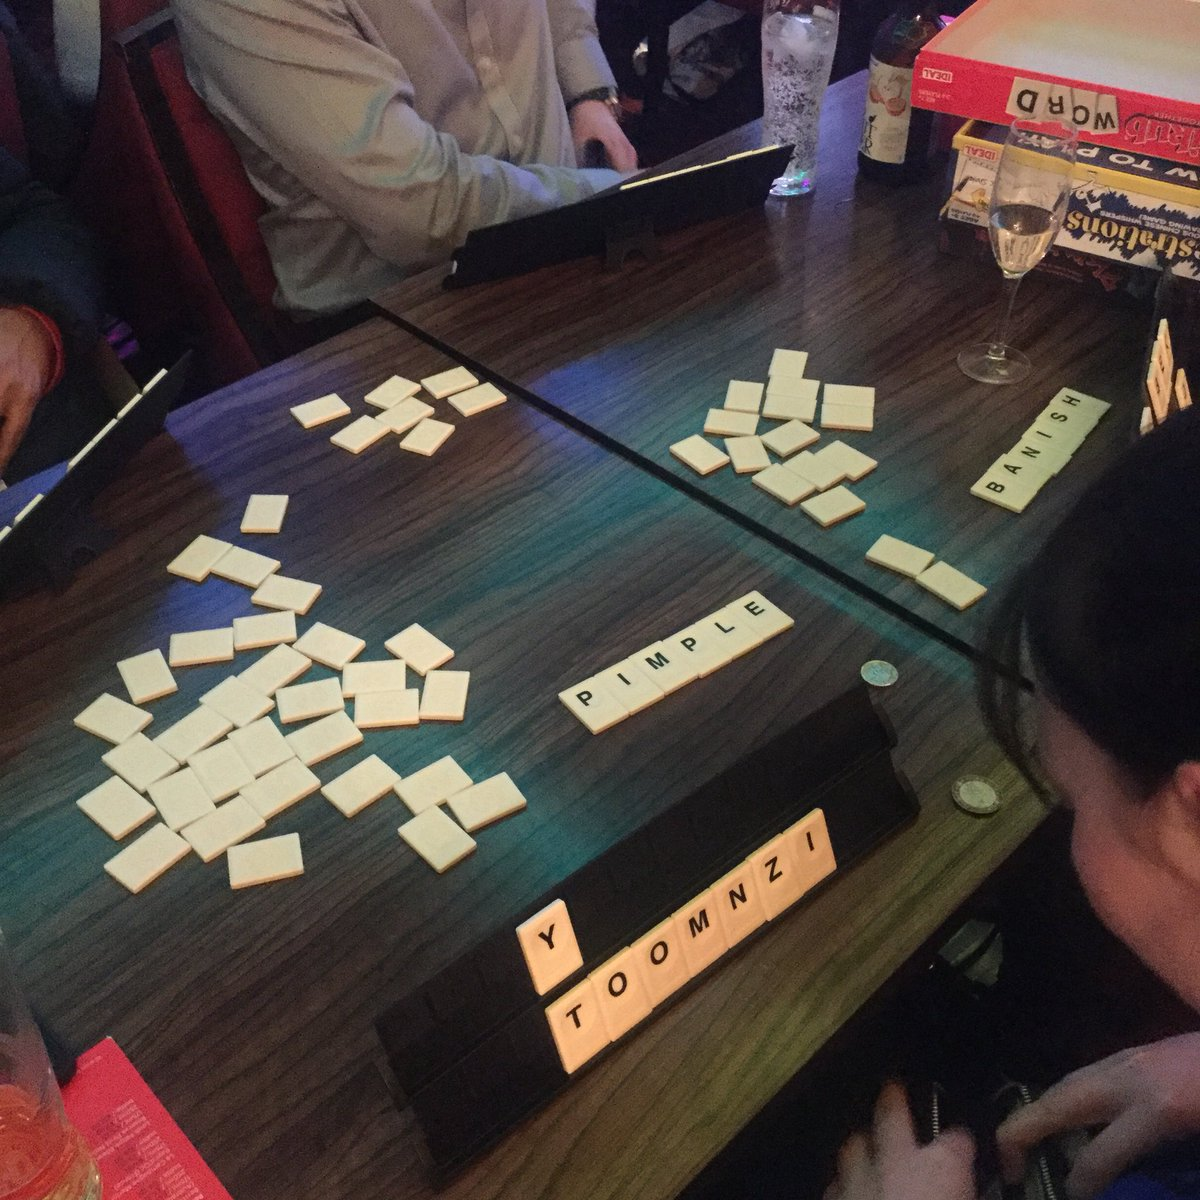 Fancy something wordy? #RummikubWord from the lovely folk @JohnAdams_Toys hits the spot...pic.twitter.com/Gmamp98KfR